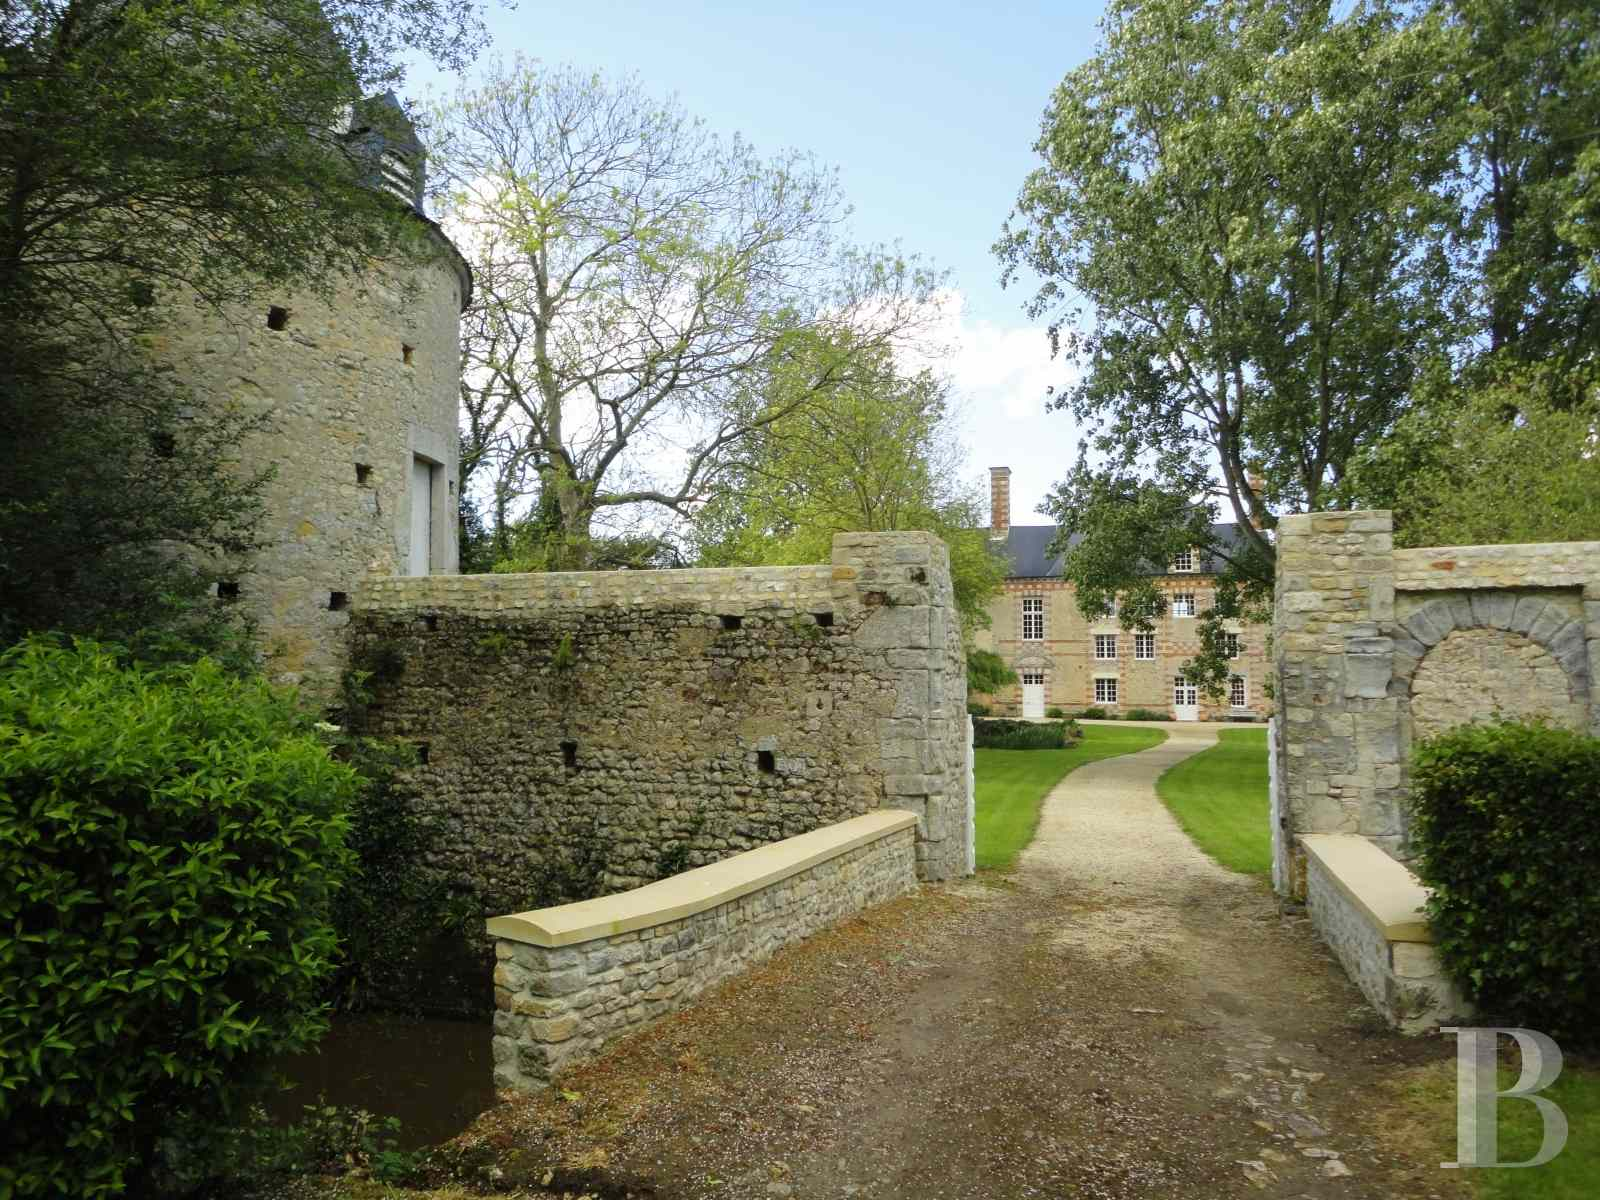 chateaux for sale France lower normandy bessin area - 1 zoom